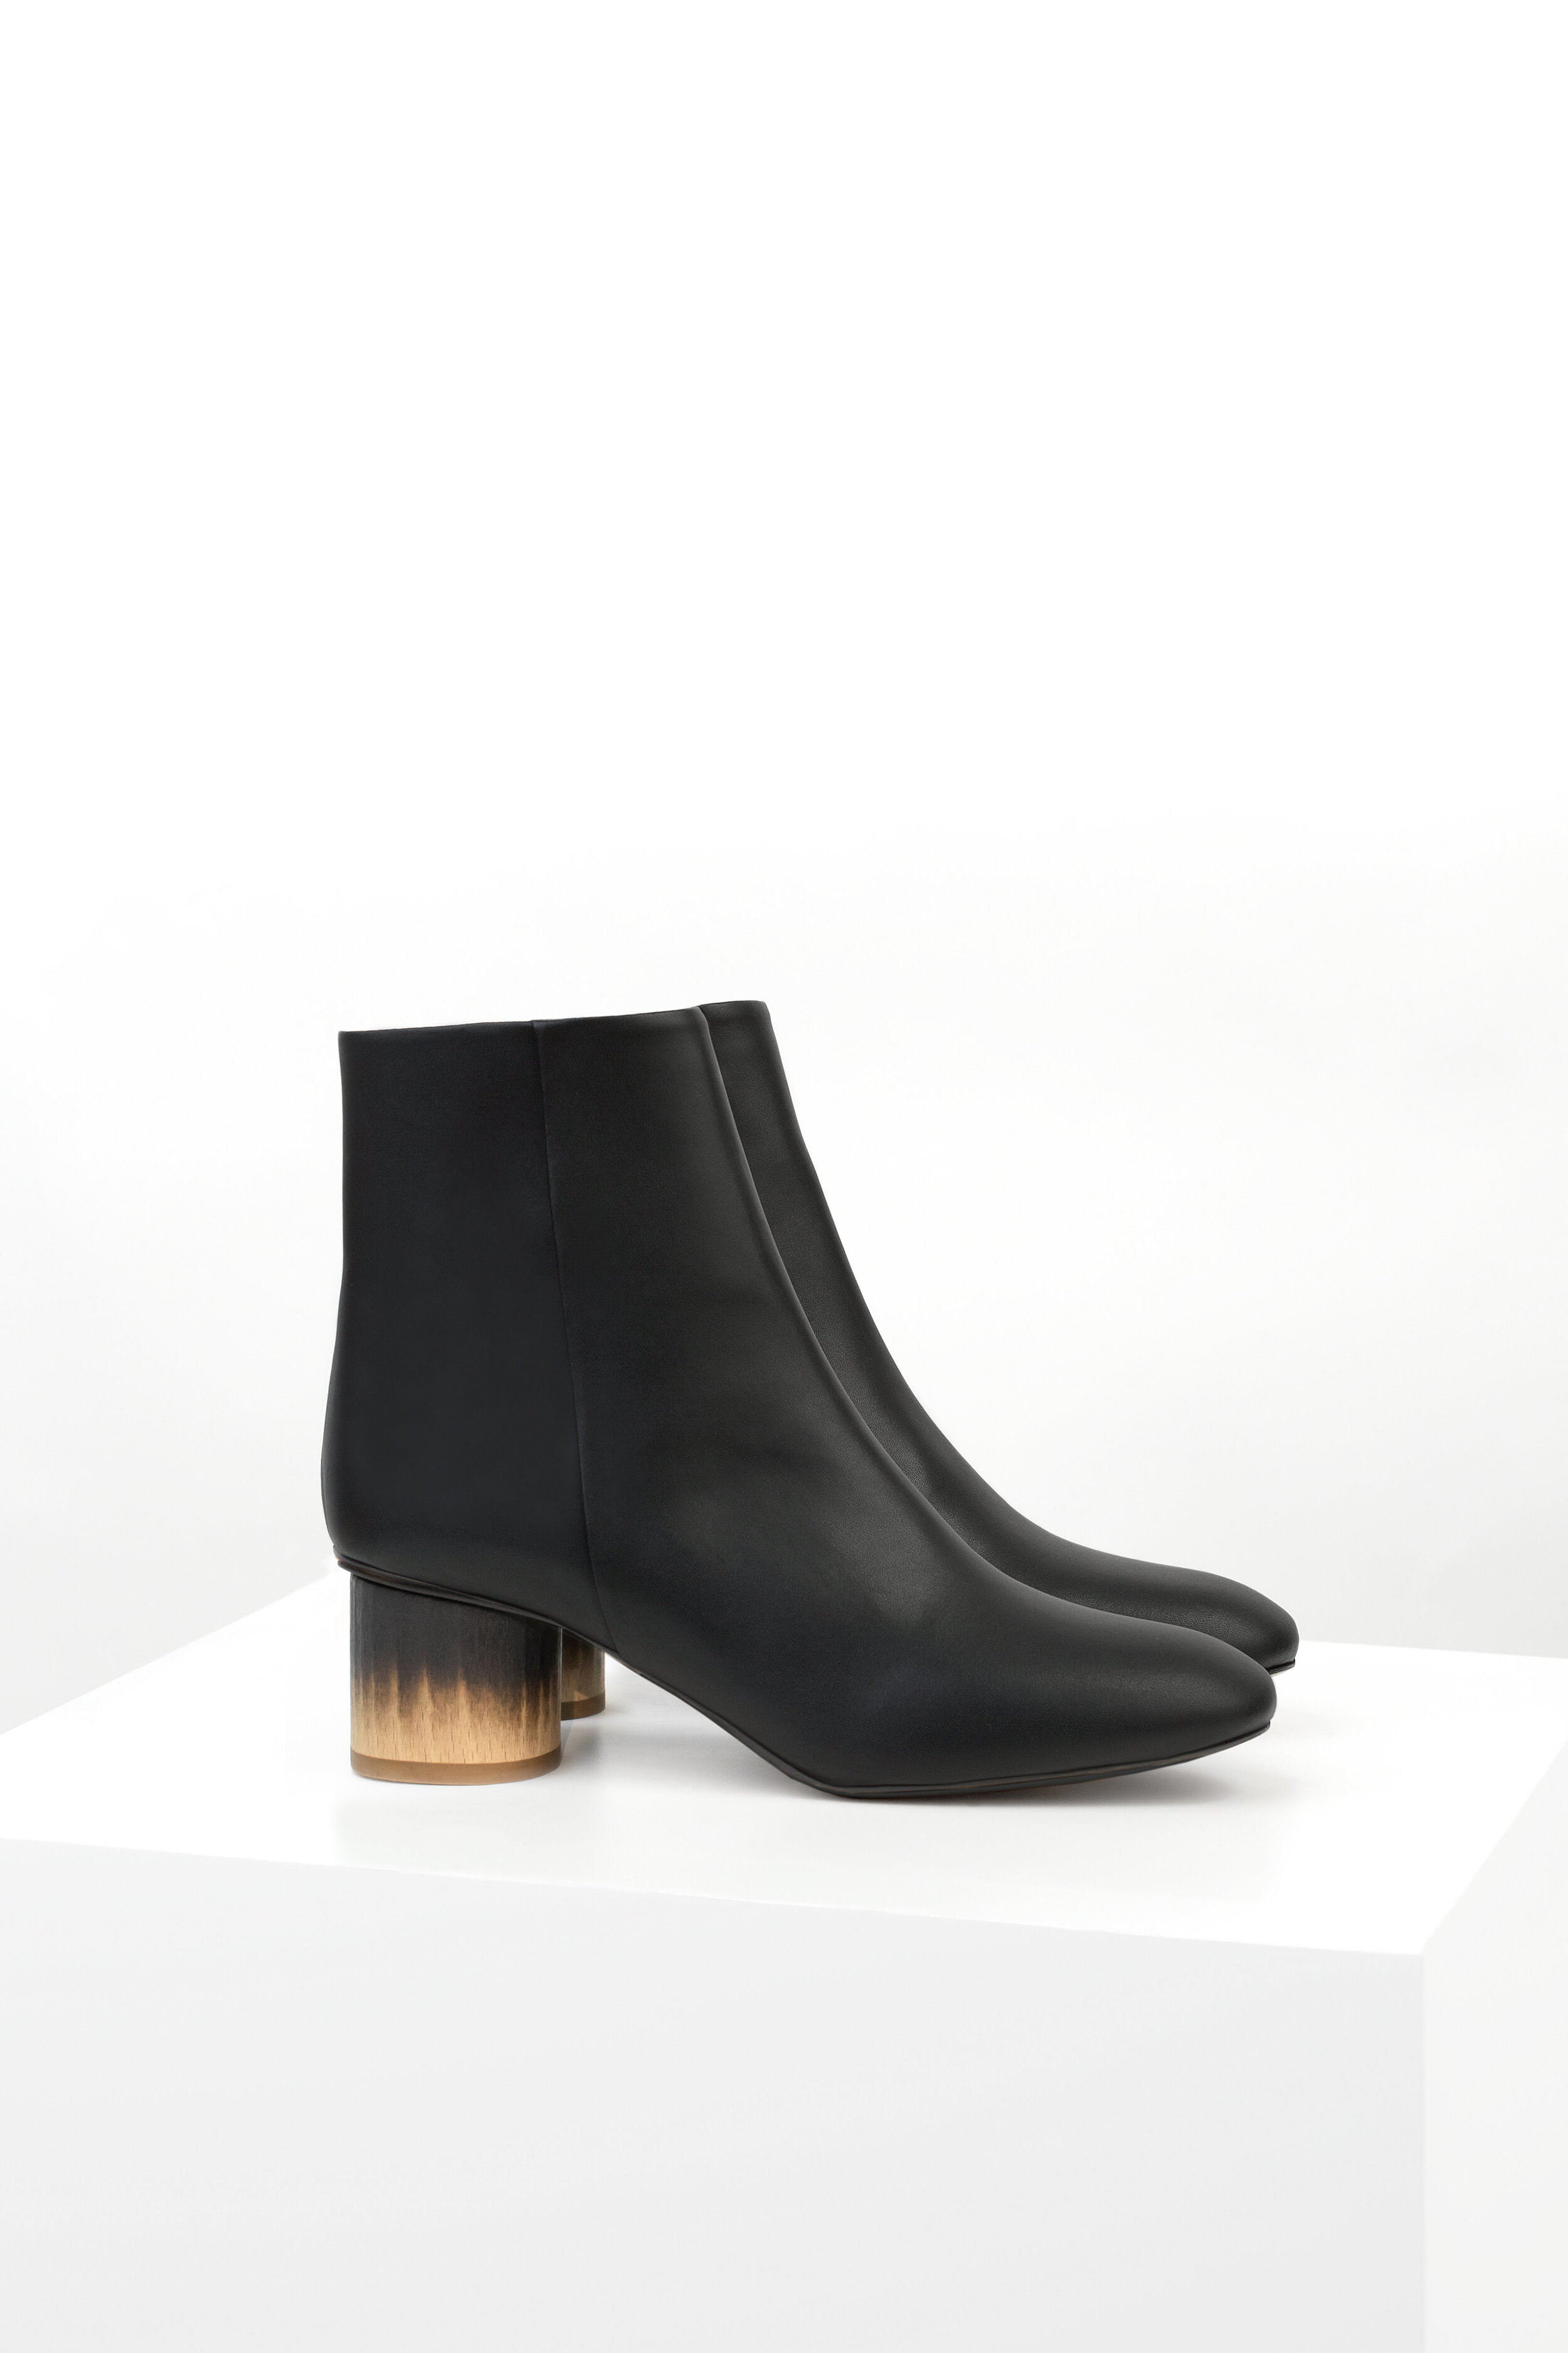 AW19 Low Ankle Boot Black Faux-Nappa Burned Heel copy.jpg